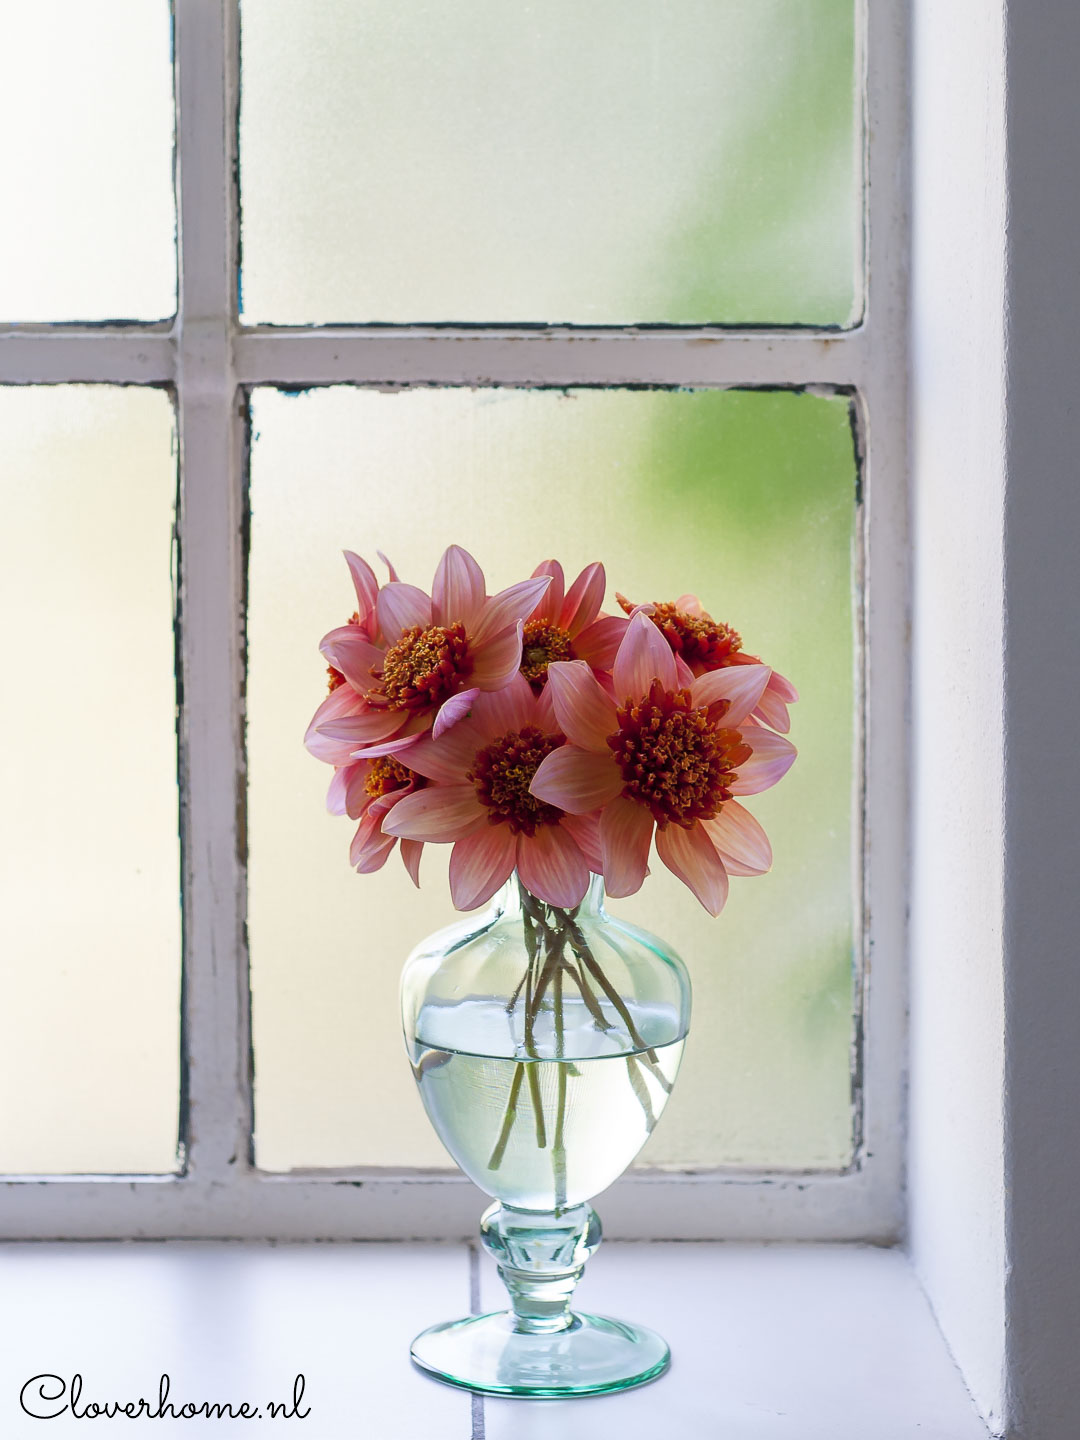 Dahlia garden review, trusted favourites: Totally Tangerine - Cloverhome.nl